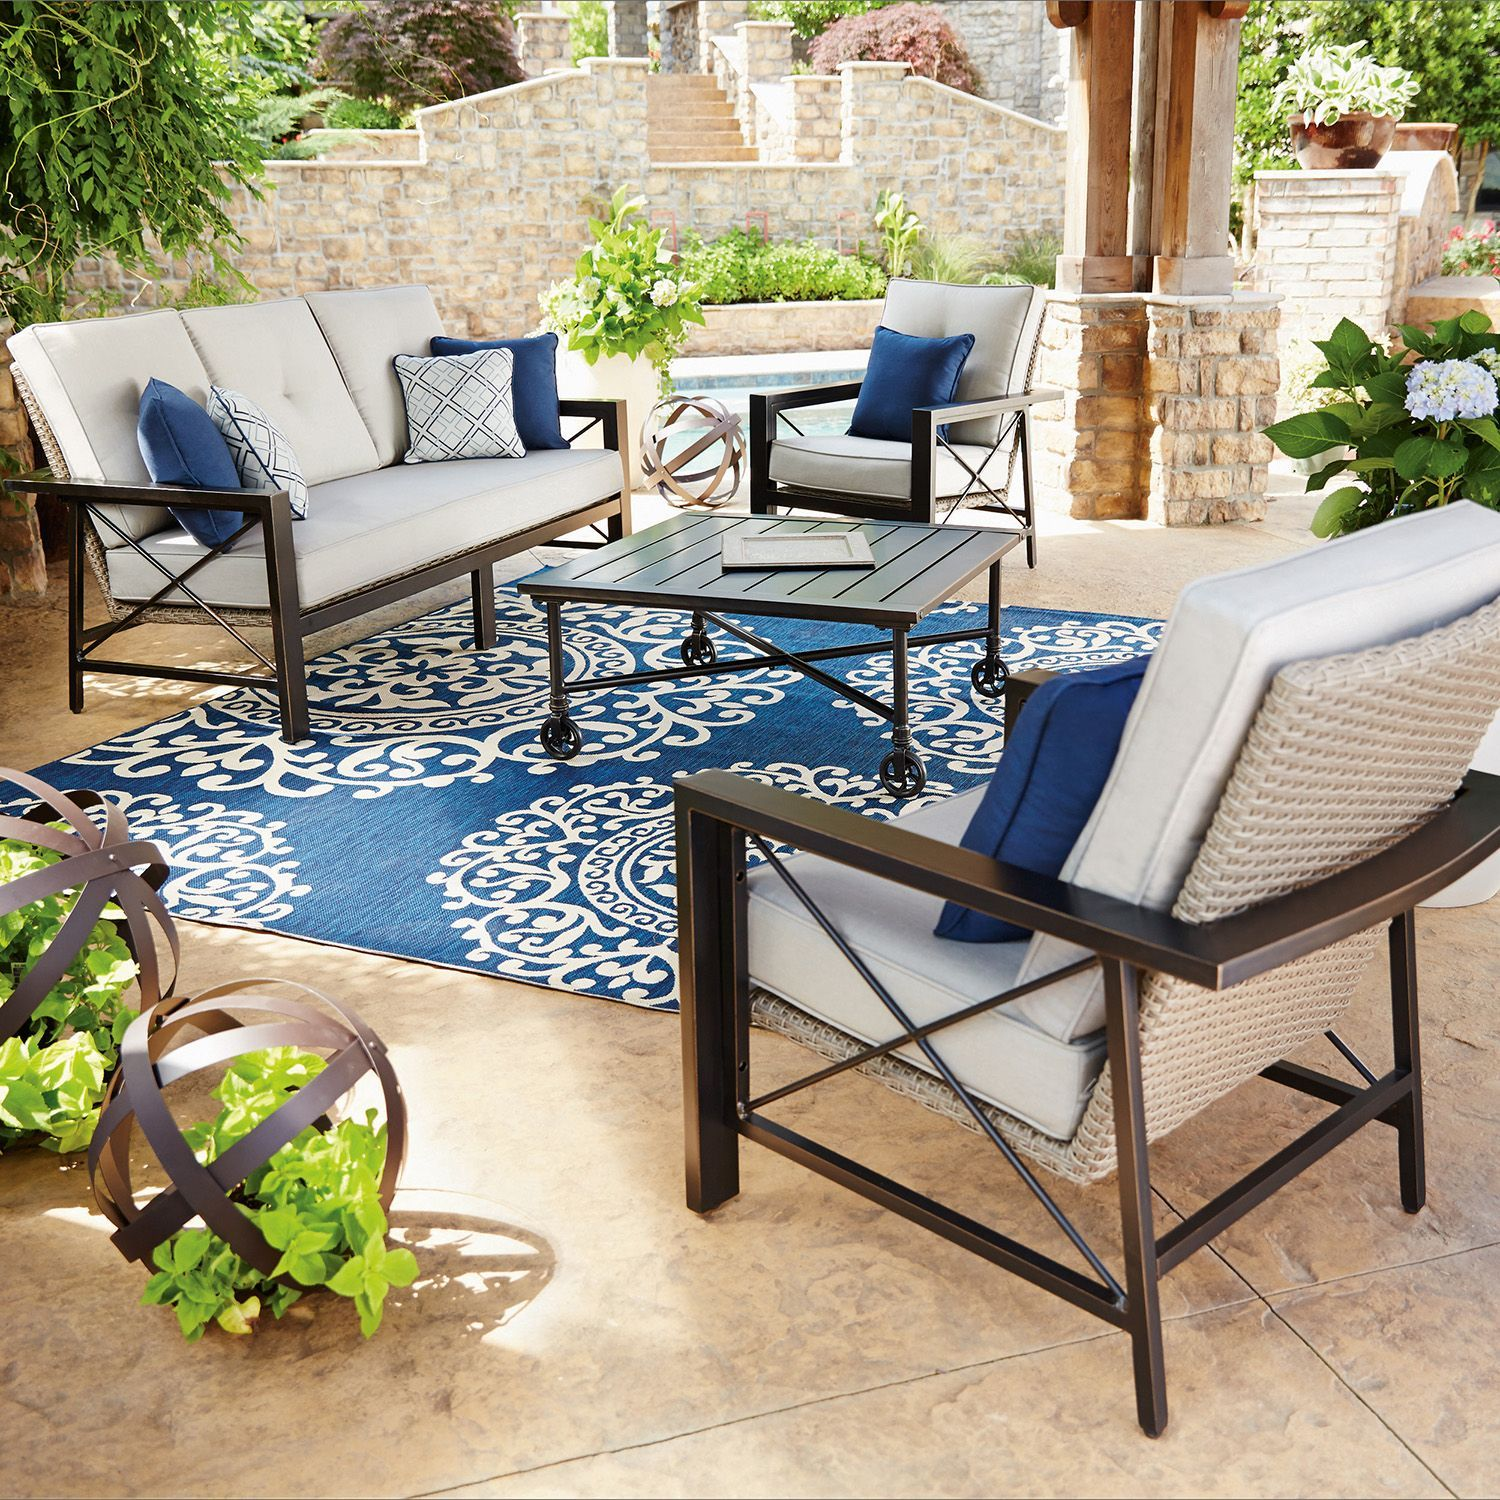 Buy Member s Mark Katana 4 Piece Seating Set Foremost Group